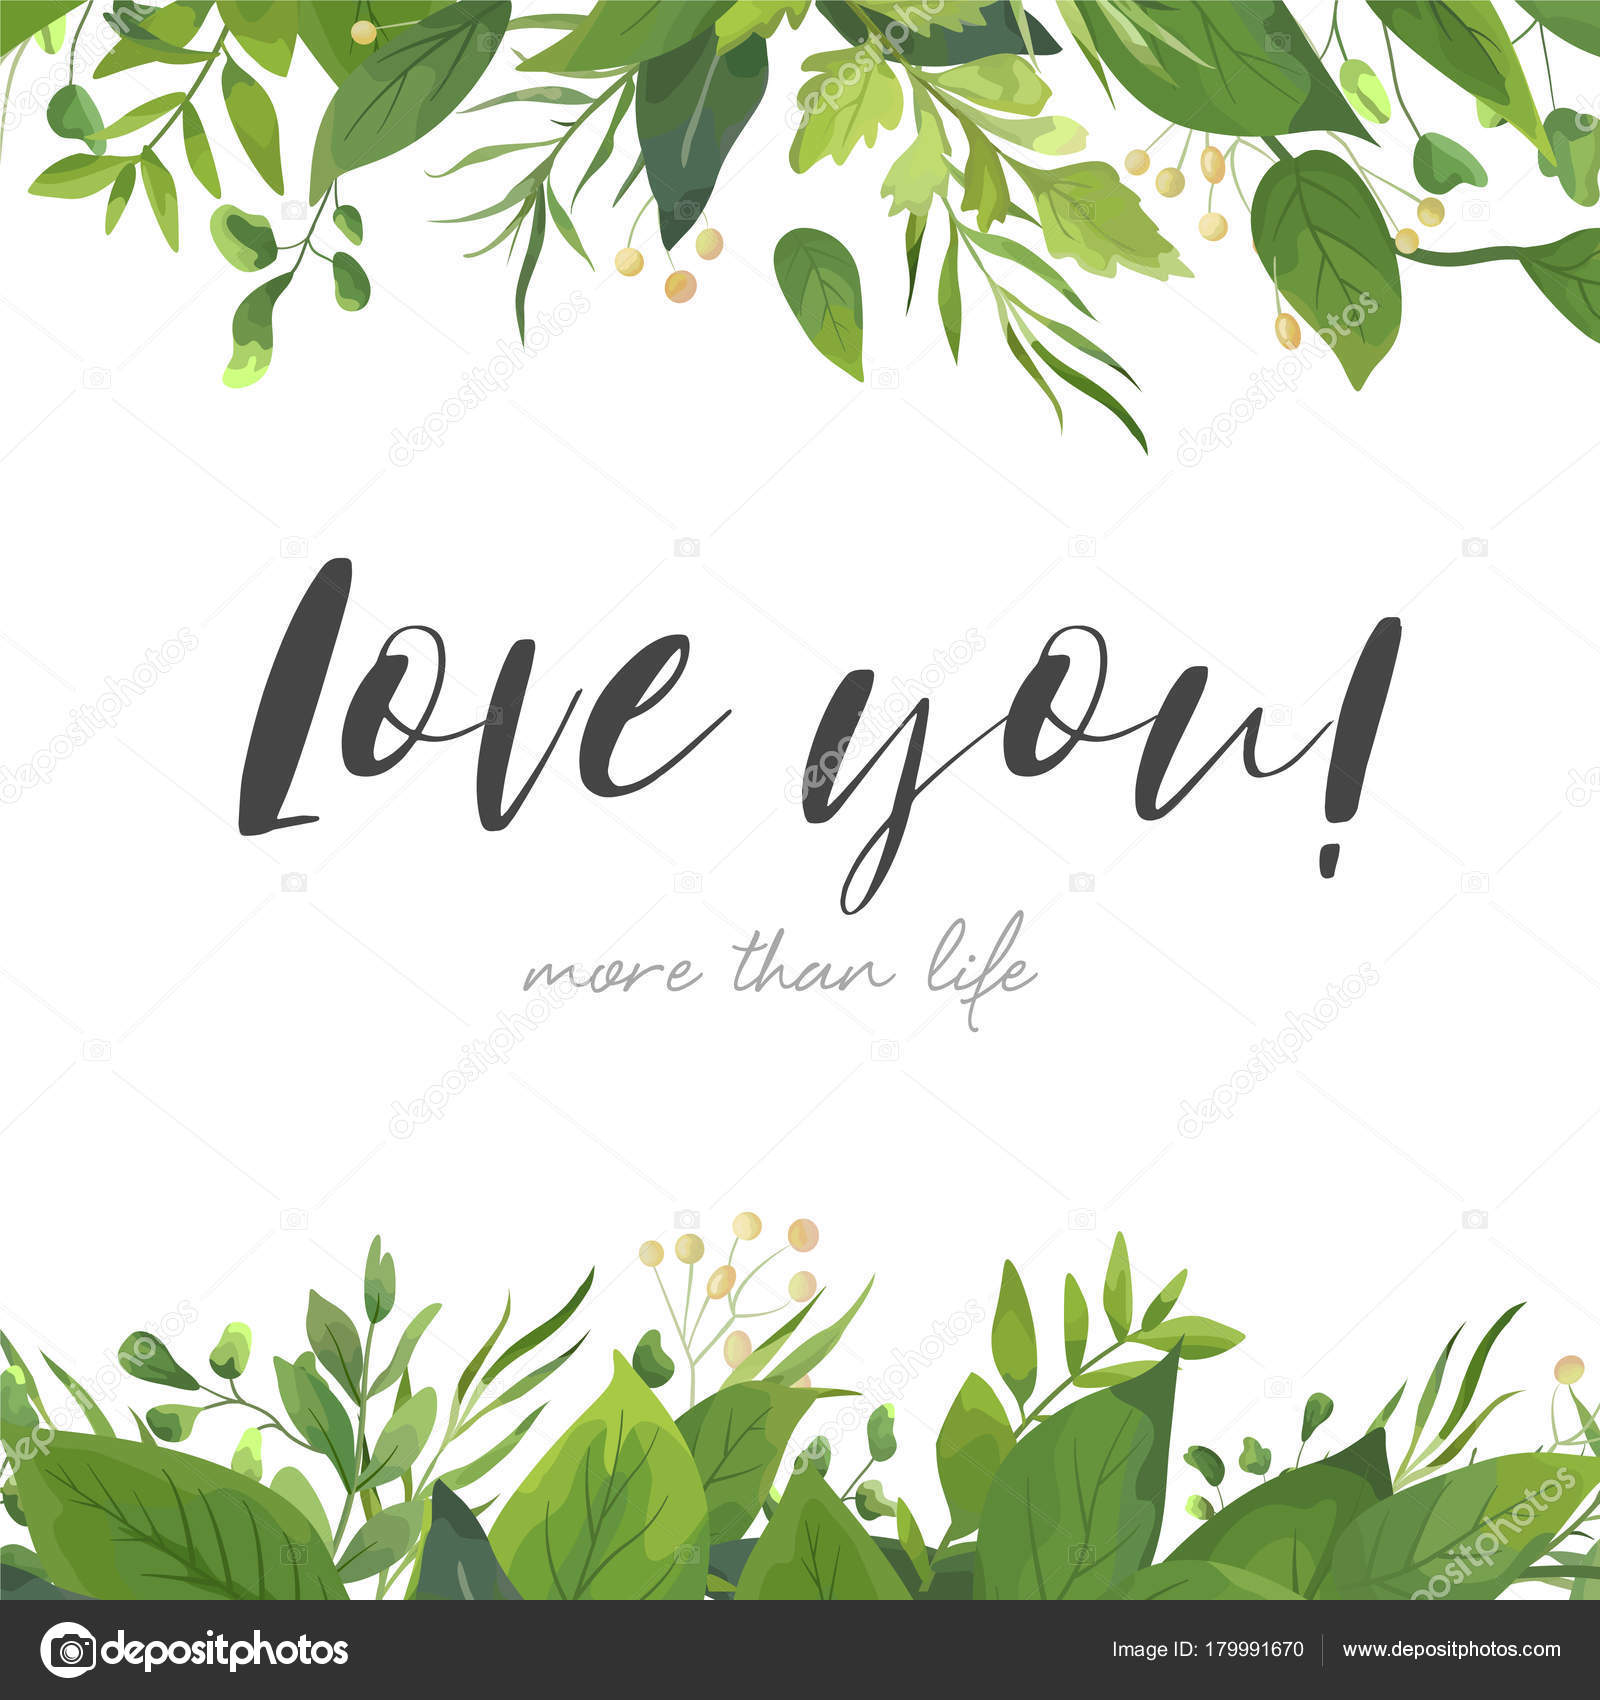 Tropical Forest Greenery Herbs Decorative Frame Border Elegant Romantic Greeting Invitation Postcard Template Love You Text Vector By Alewiena